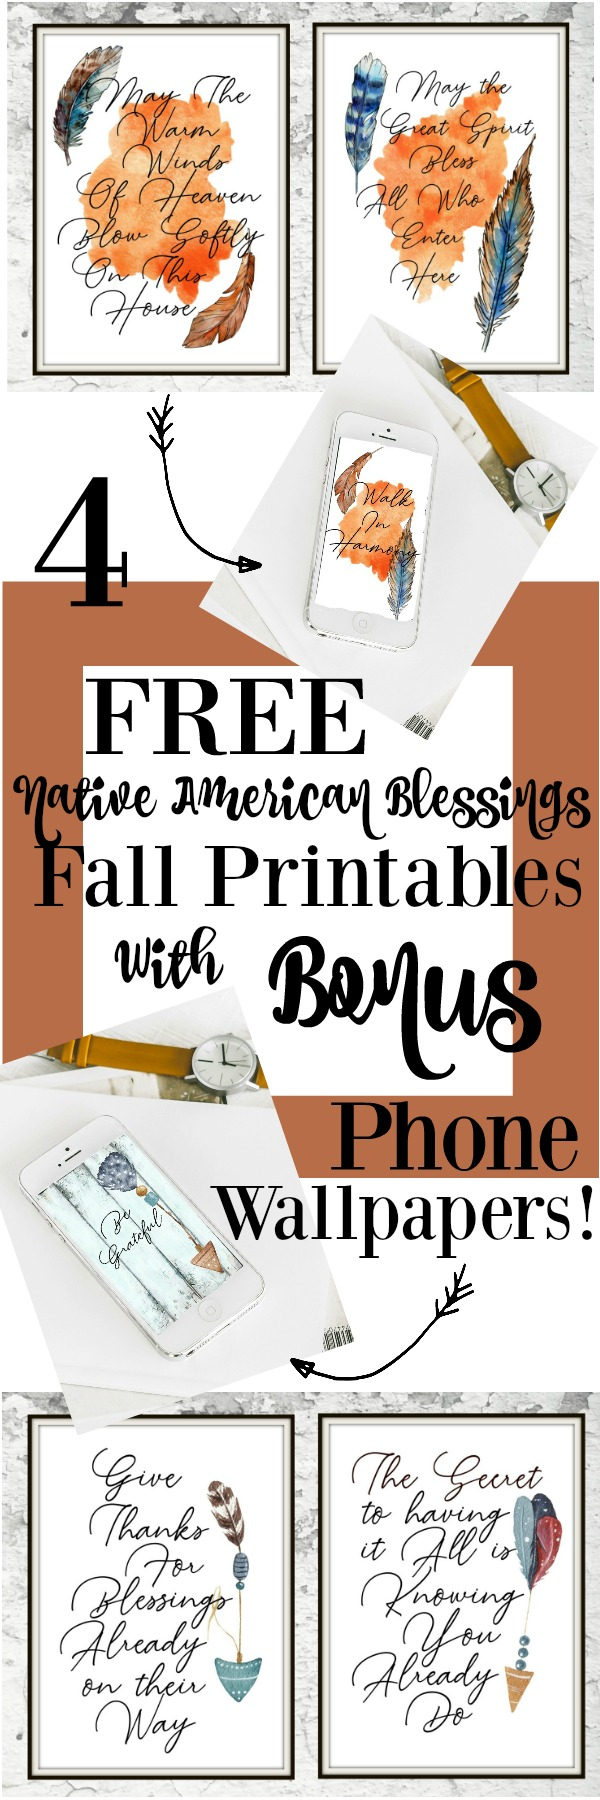 Get your FREE Native American blessings printables! With a bonus digital wallpaper!